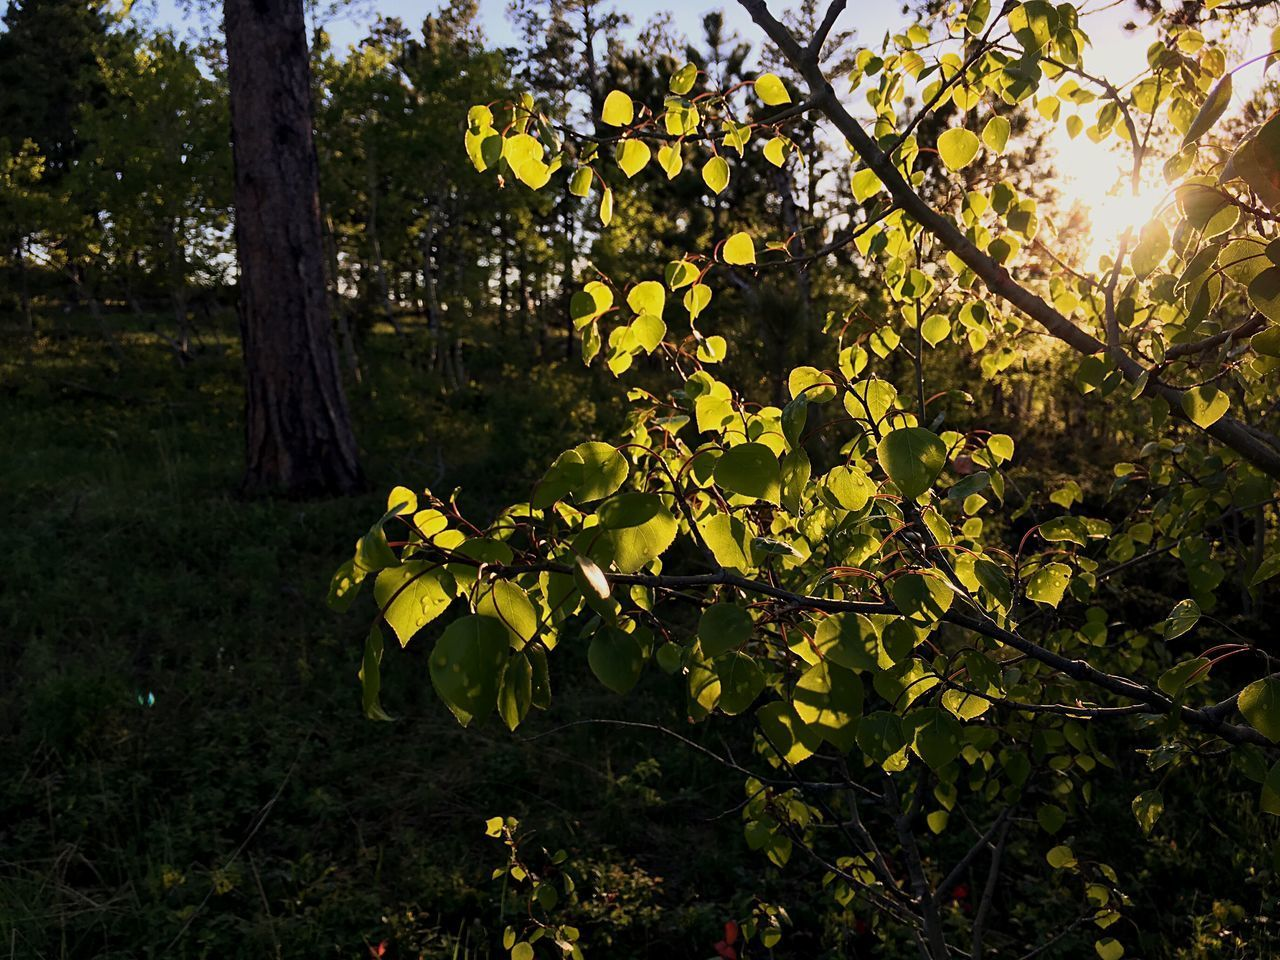 plant, growth, tree, beauty in nature, yellow, nature, flower, freshness, flowering plant, no people, sunlight, plant part, leaf, tranquility, fragility, vulnerability, branch, land, day, outdoors